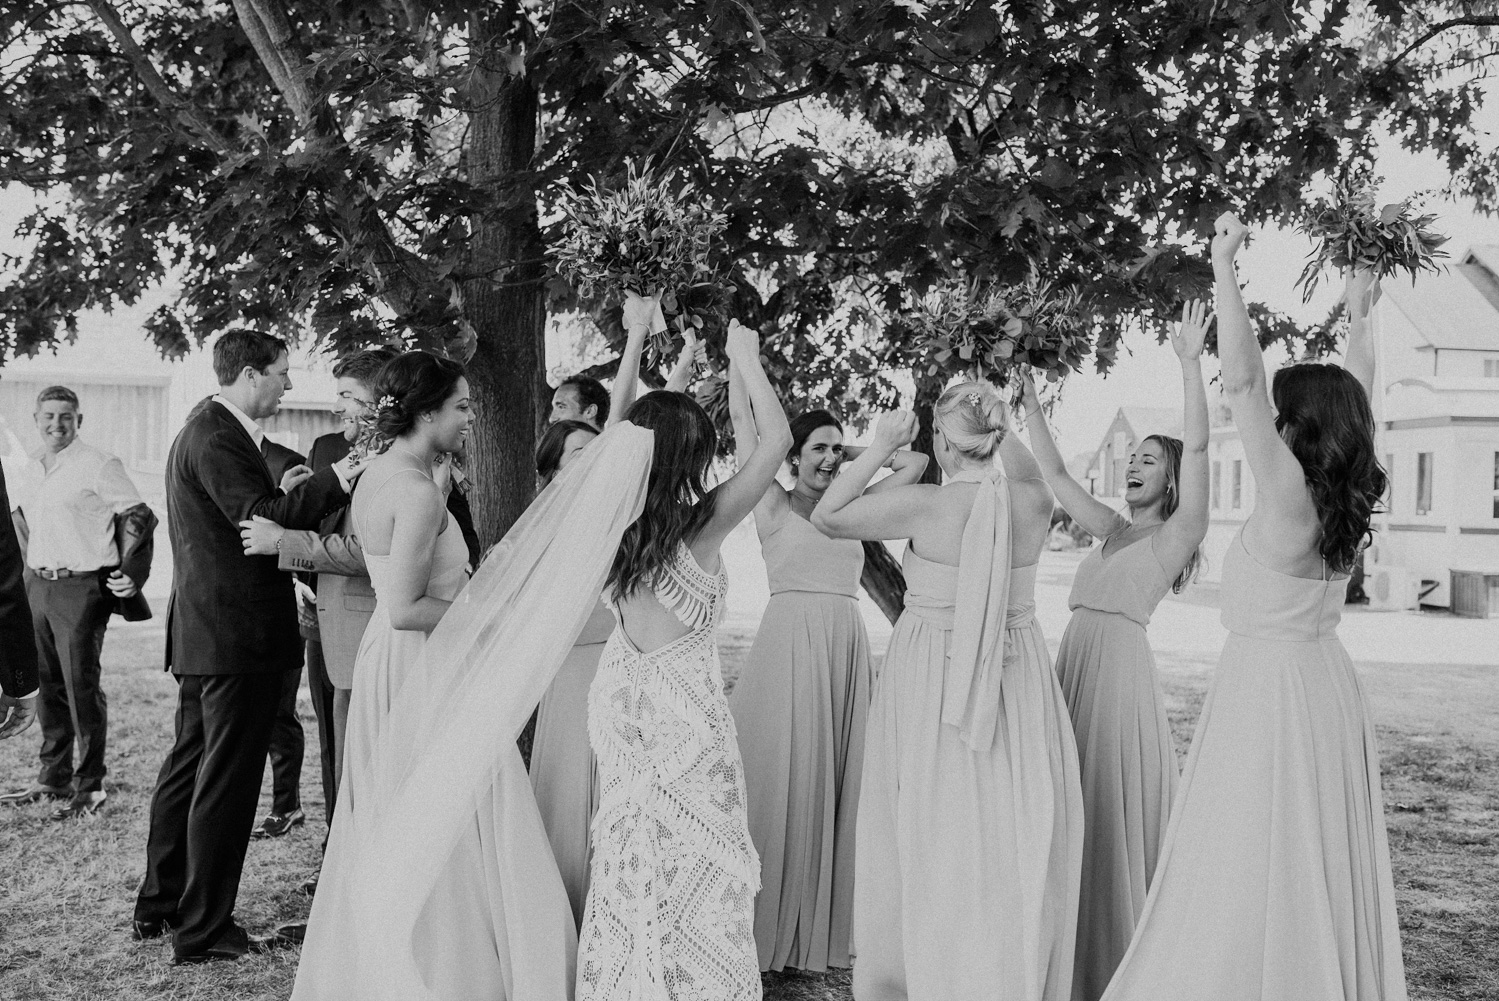 bridesmaids lift their hands in celebration at the end of the wedding ceremony